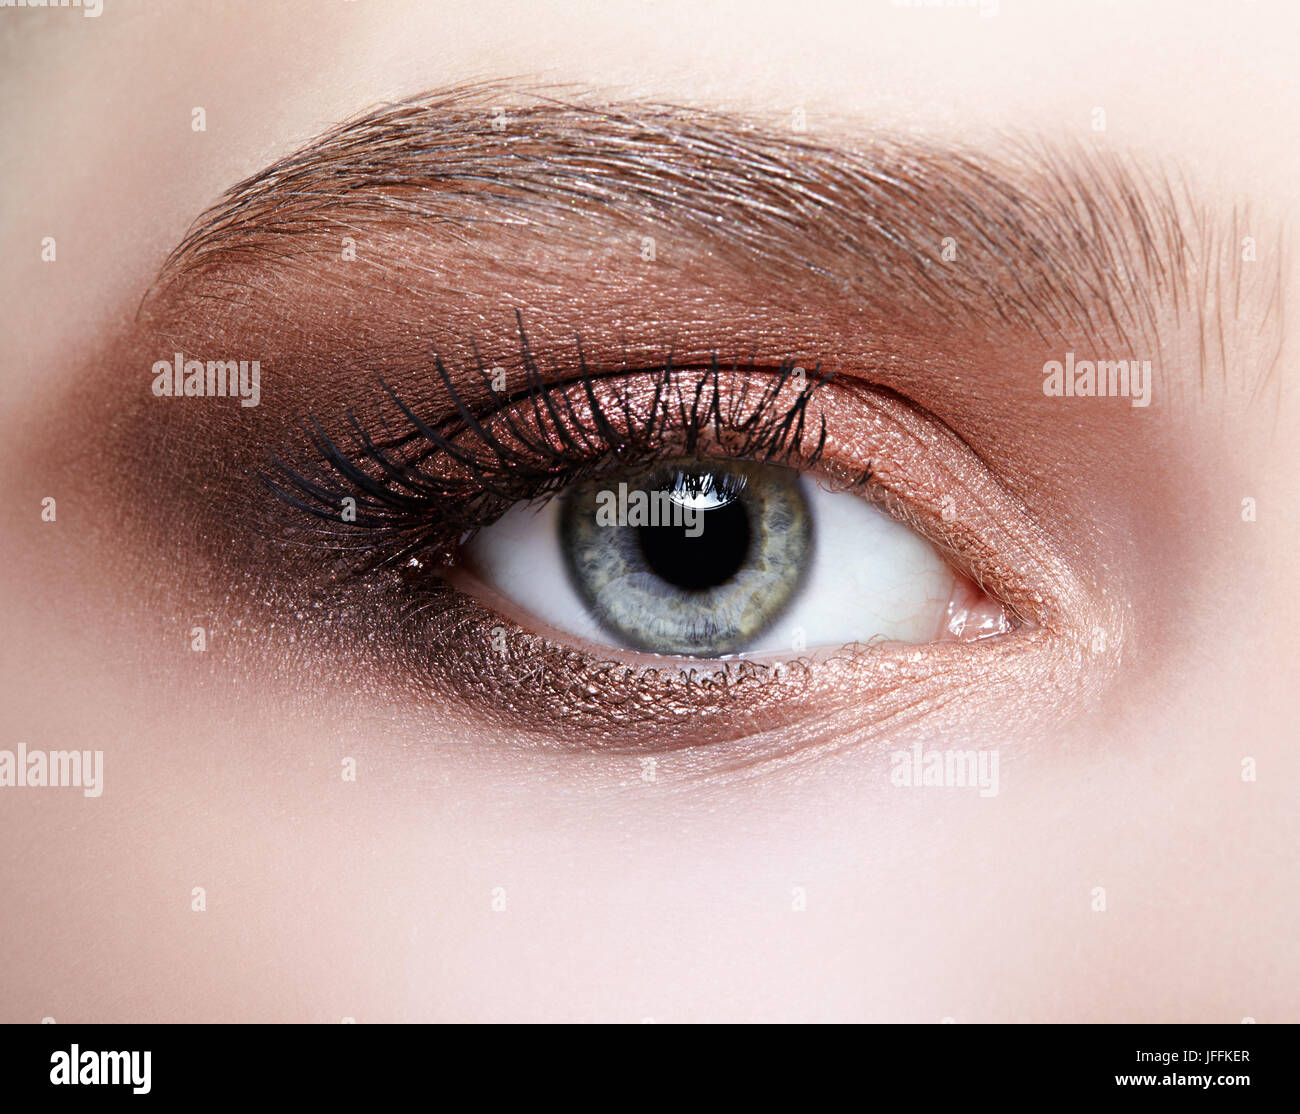 Female eye zone and brows with day makeup - Stock Image